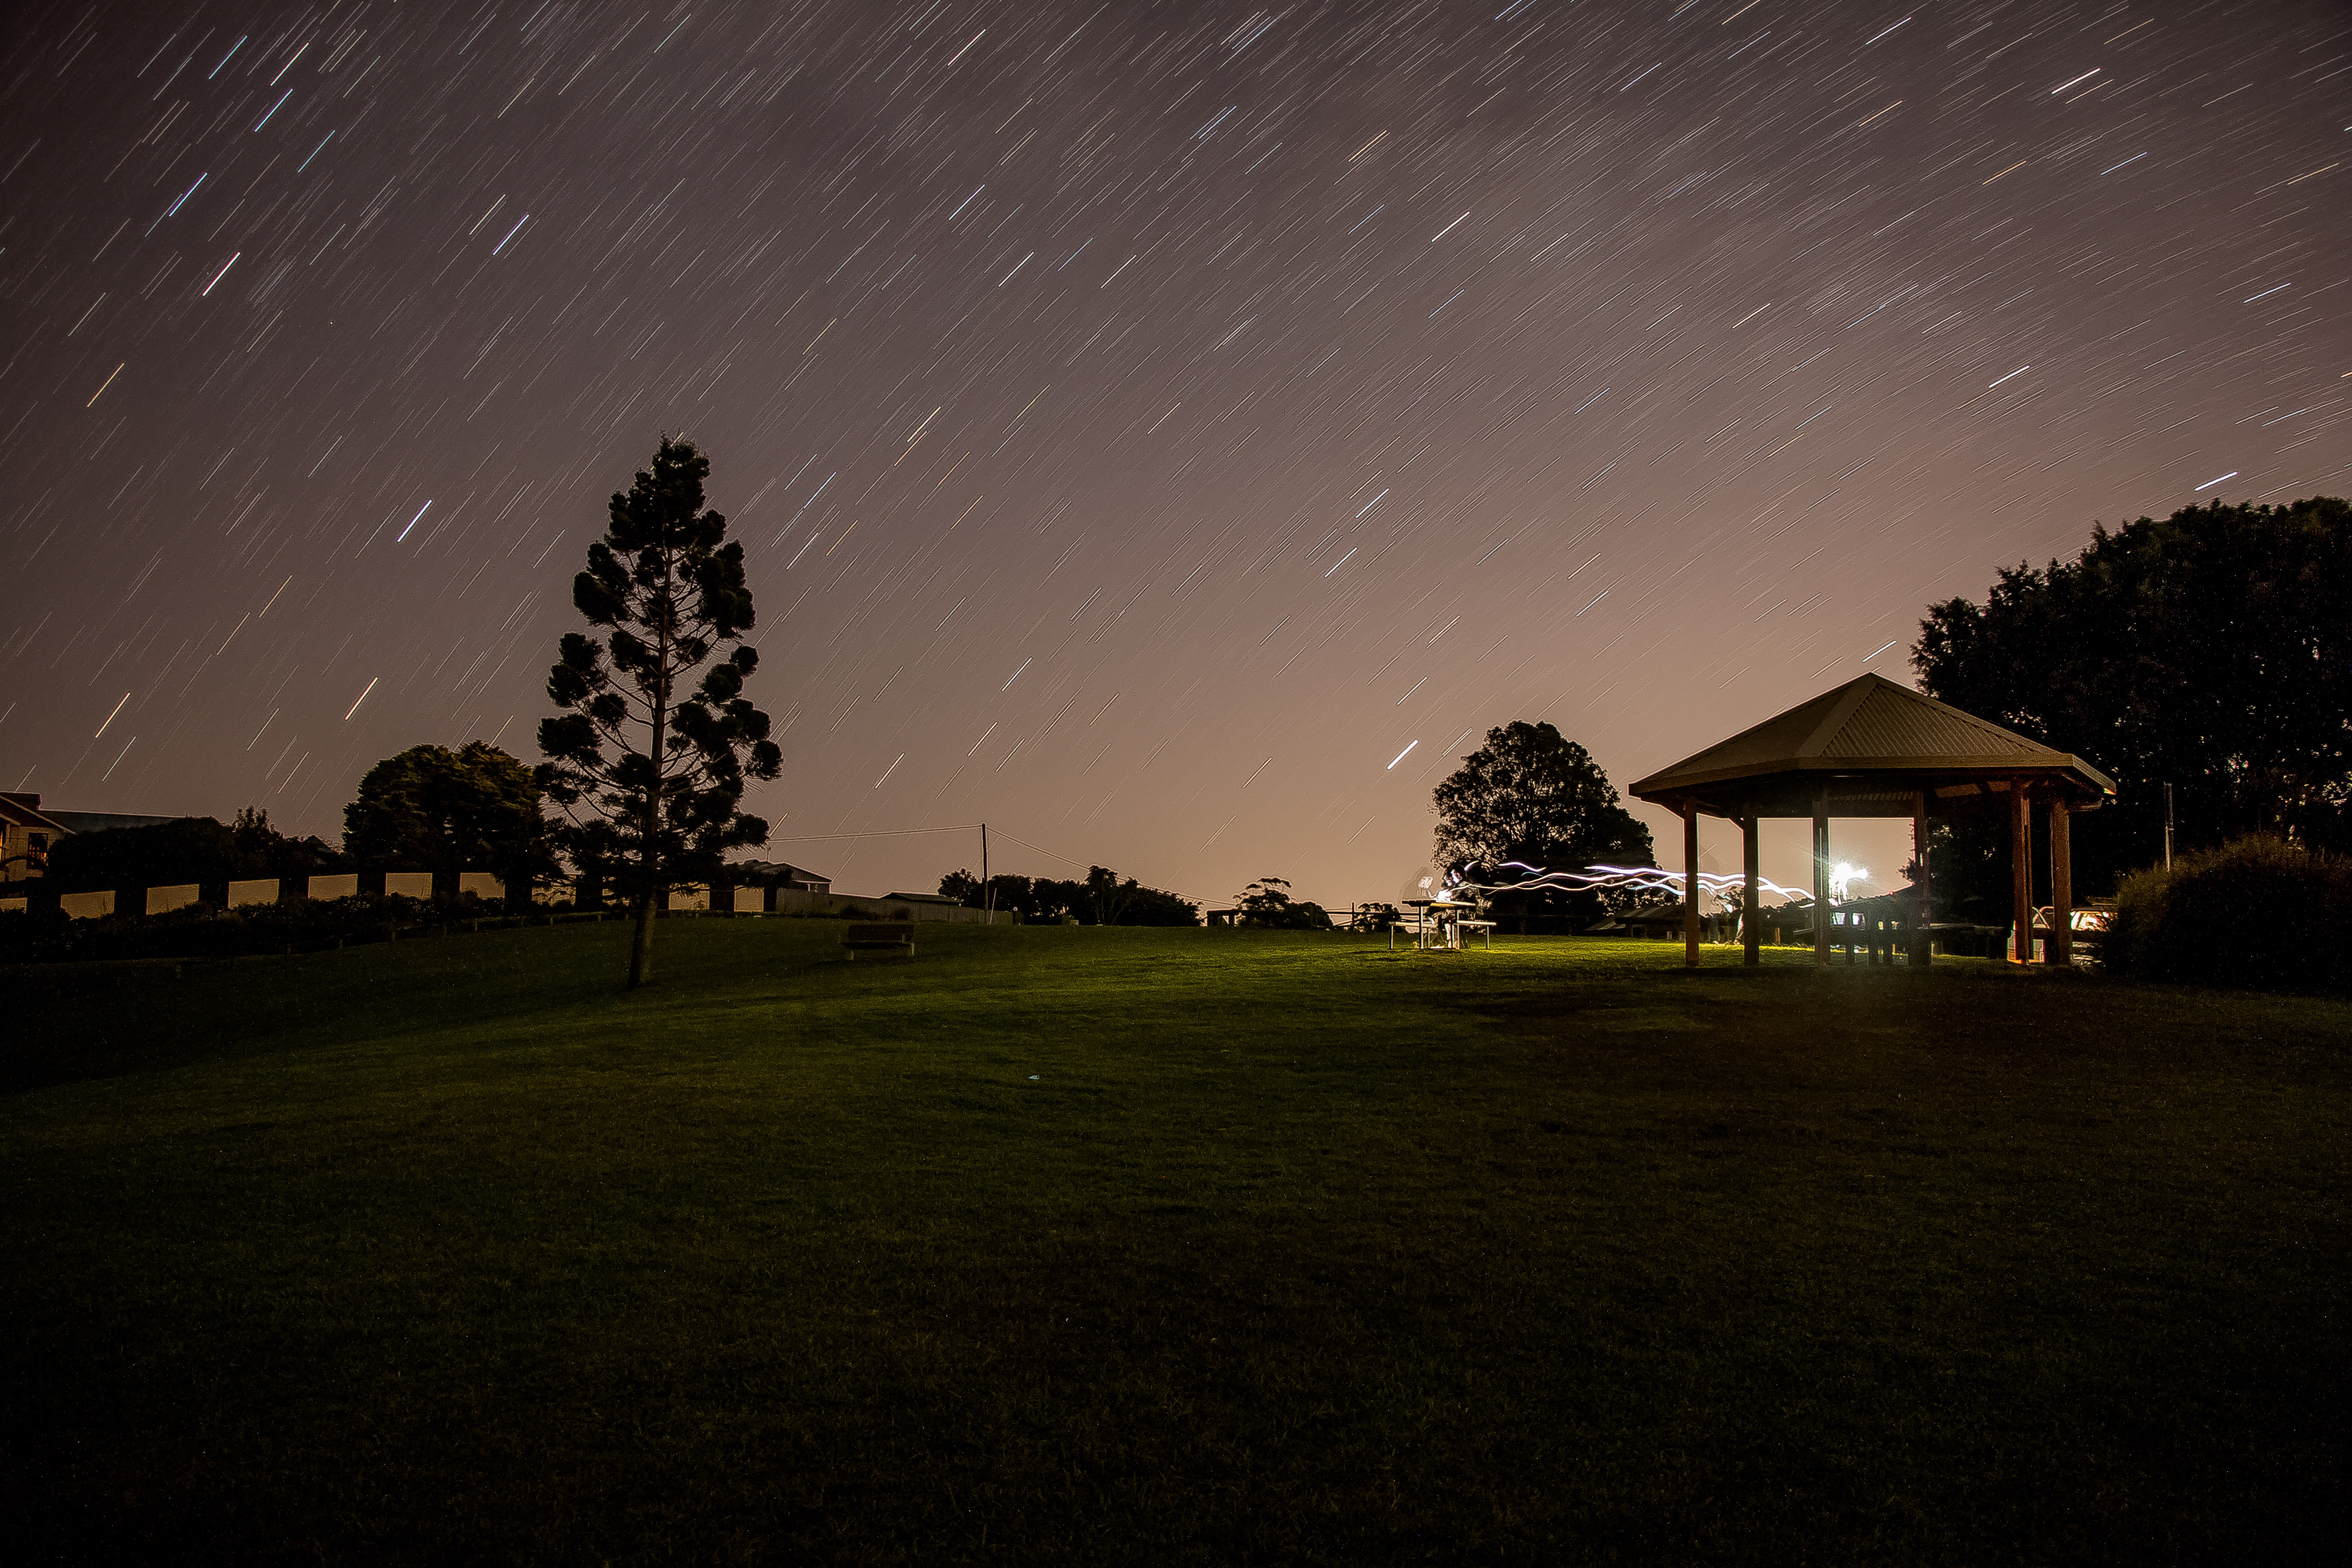 brown gazebo under starry night in time lapse photography